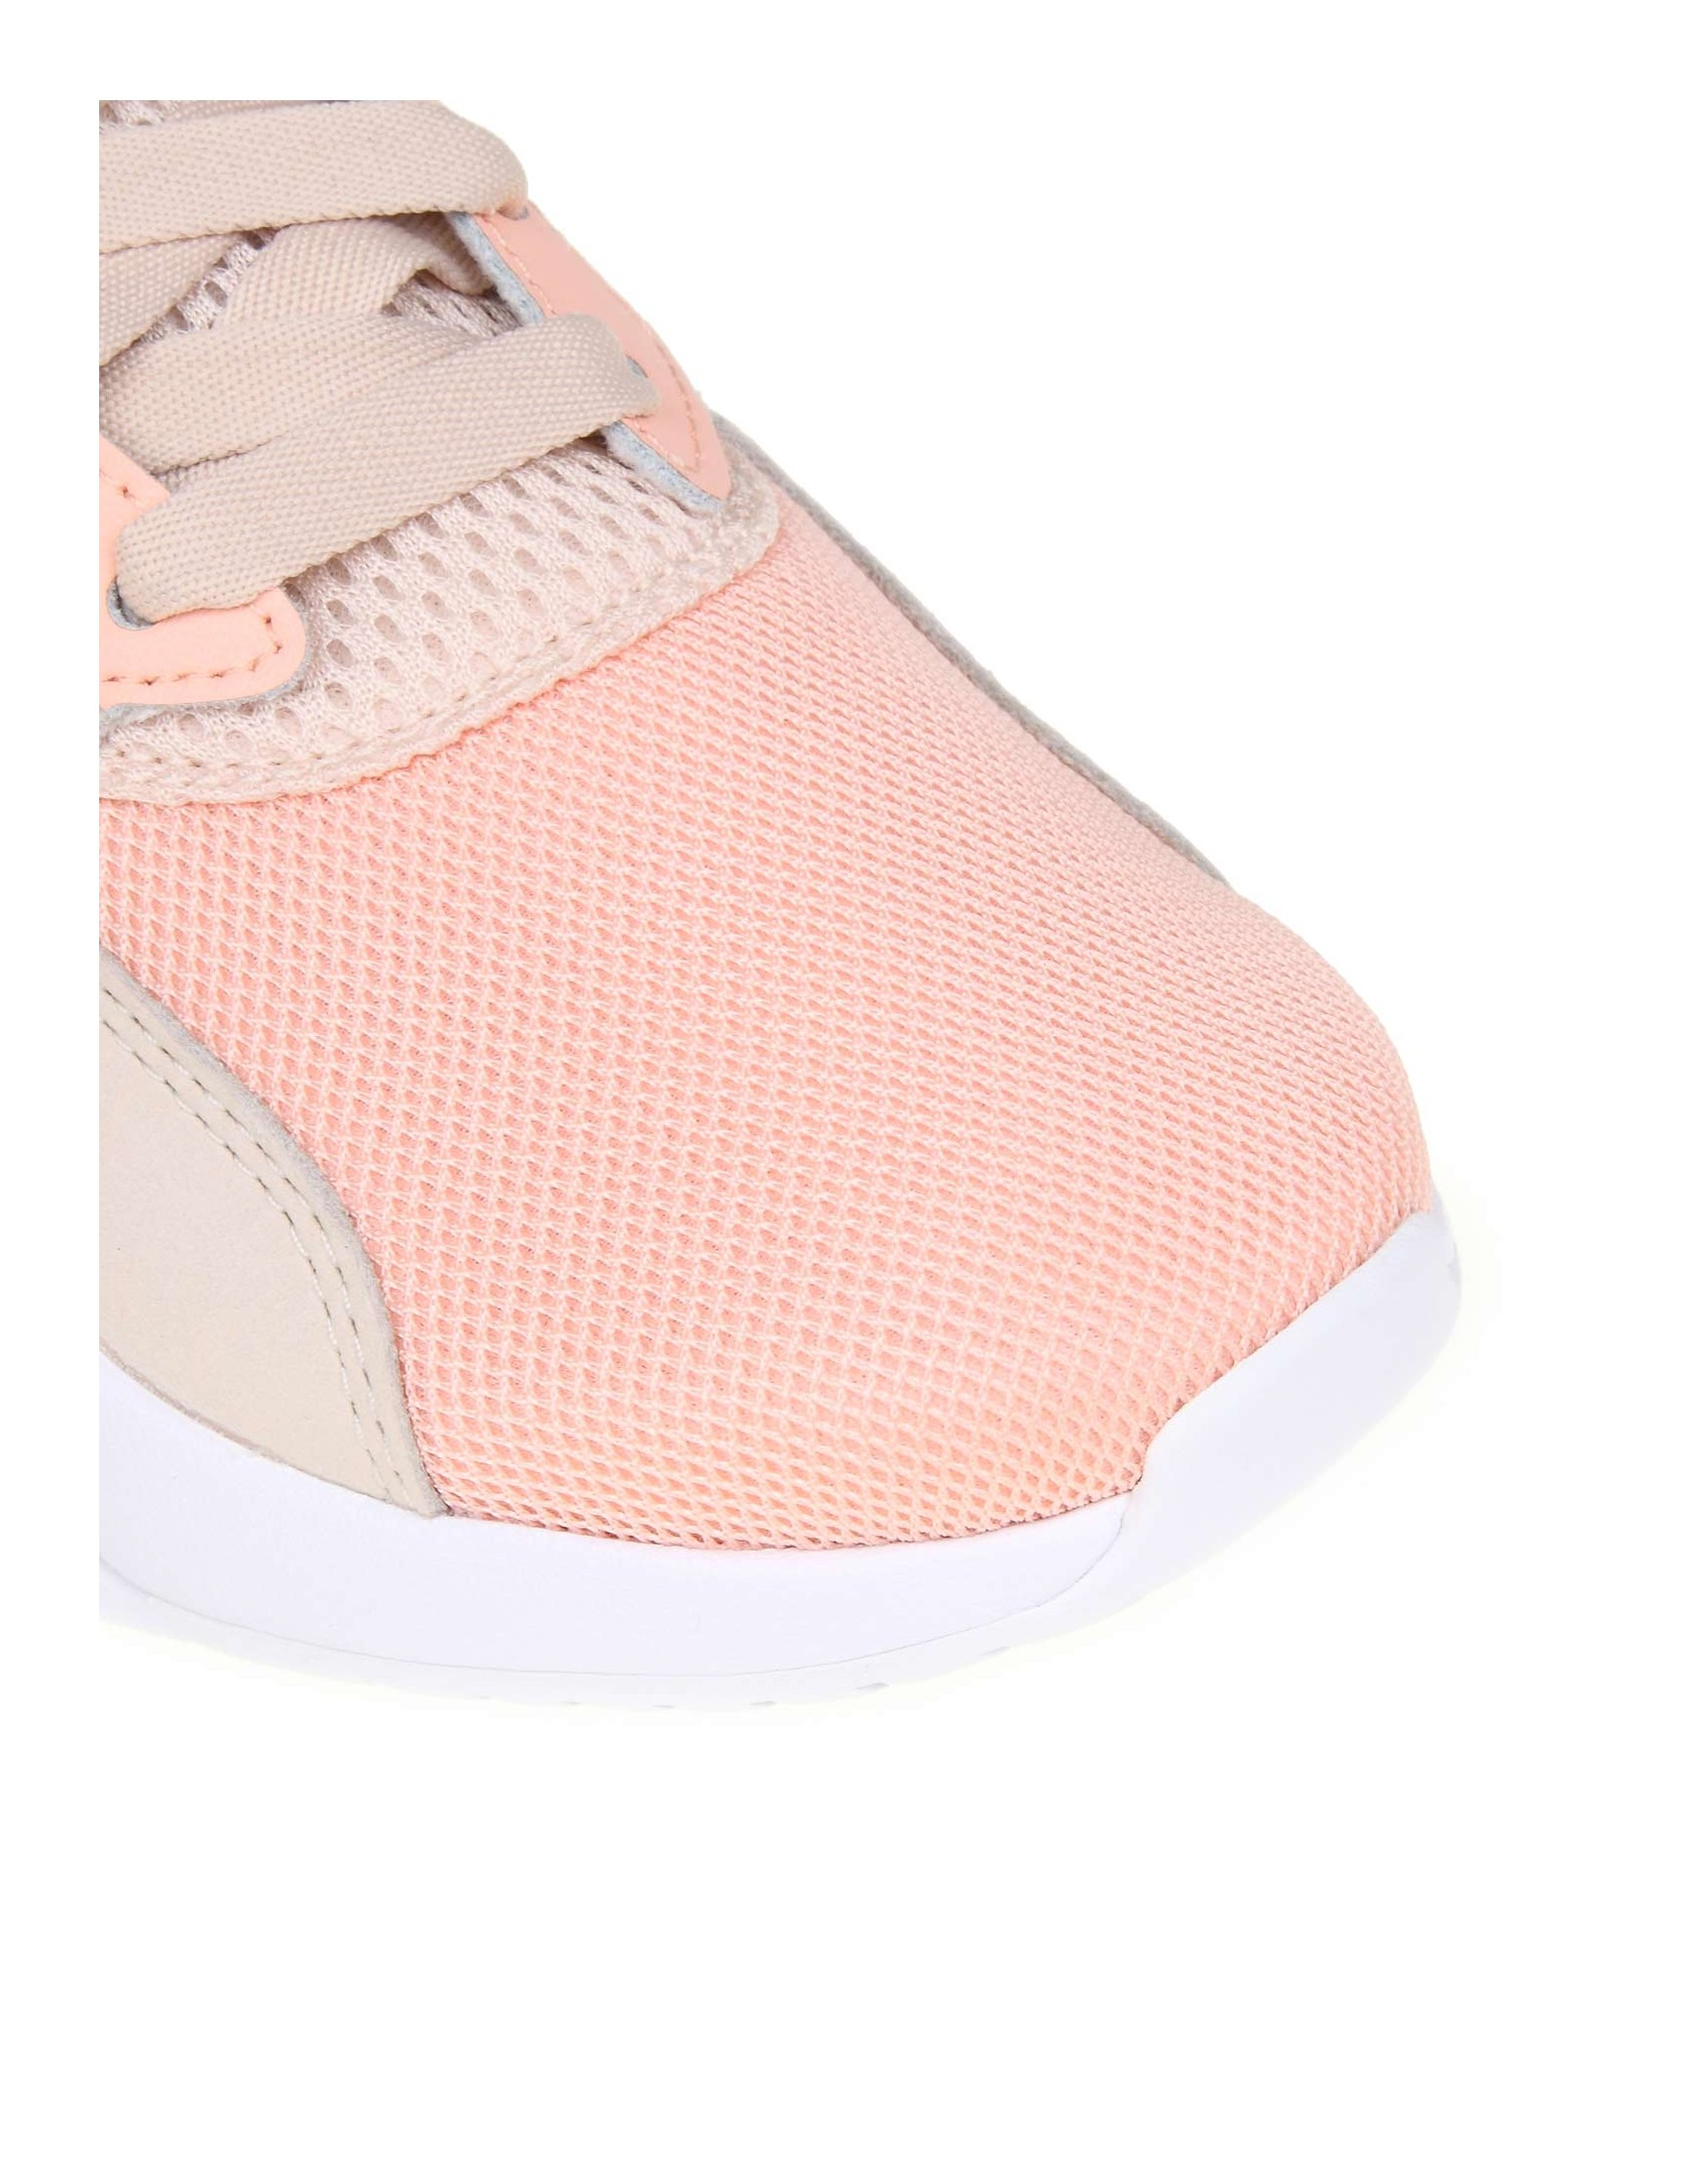 9fdb35743656d9 PUMA SNEAKERS WOMAN NOVA GRL PWR IN SYNTHETIC LEATHER NETWORK NEW ARRIVALS